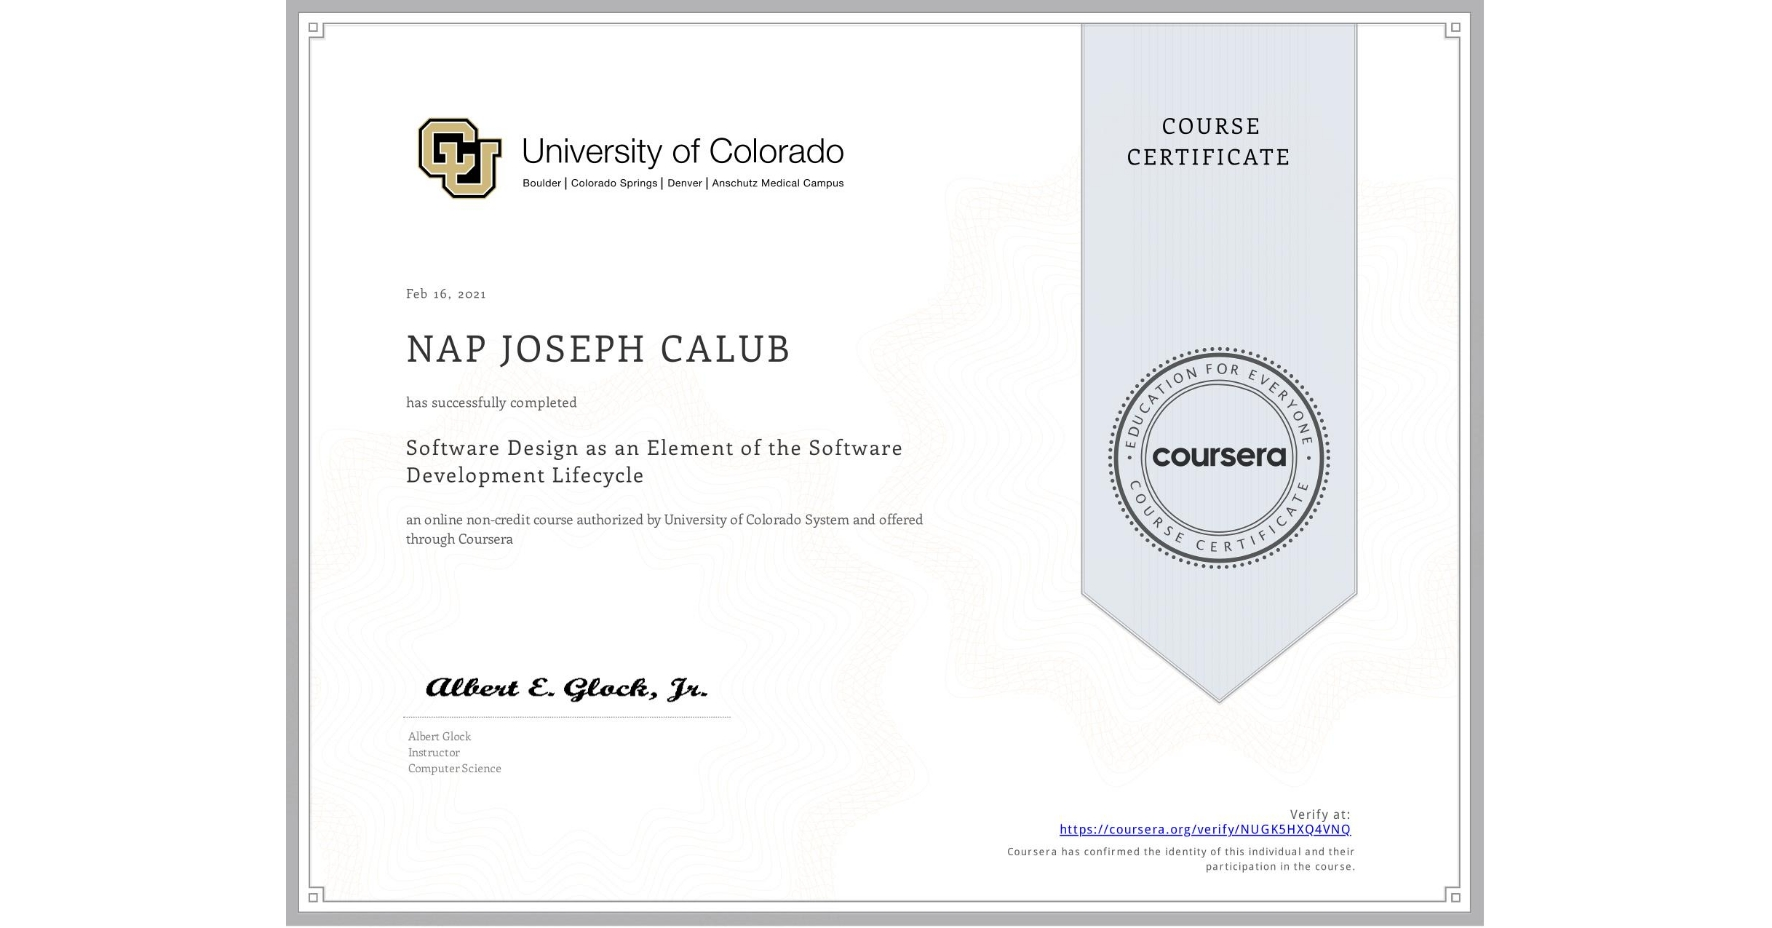 View certificate for NAP JOSEPH  CALUB, Software Design as an Element of the Software Development Lifecycle, an online non-credit course authorized by University of Colorado System and offered through Coursera